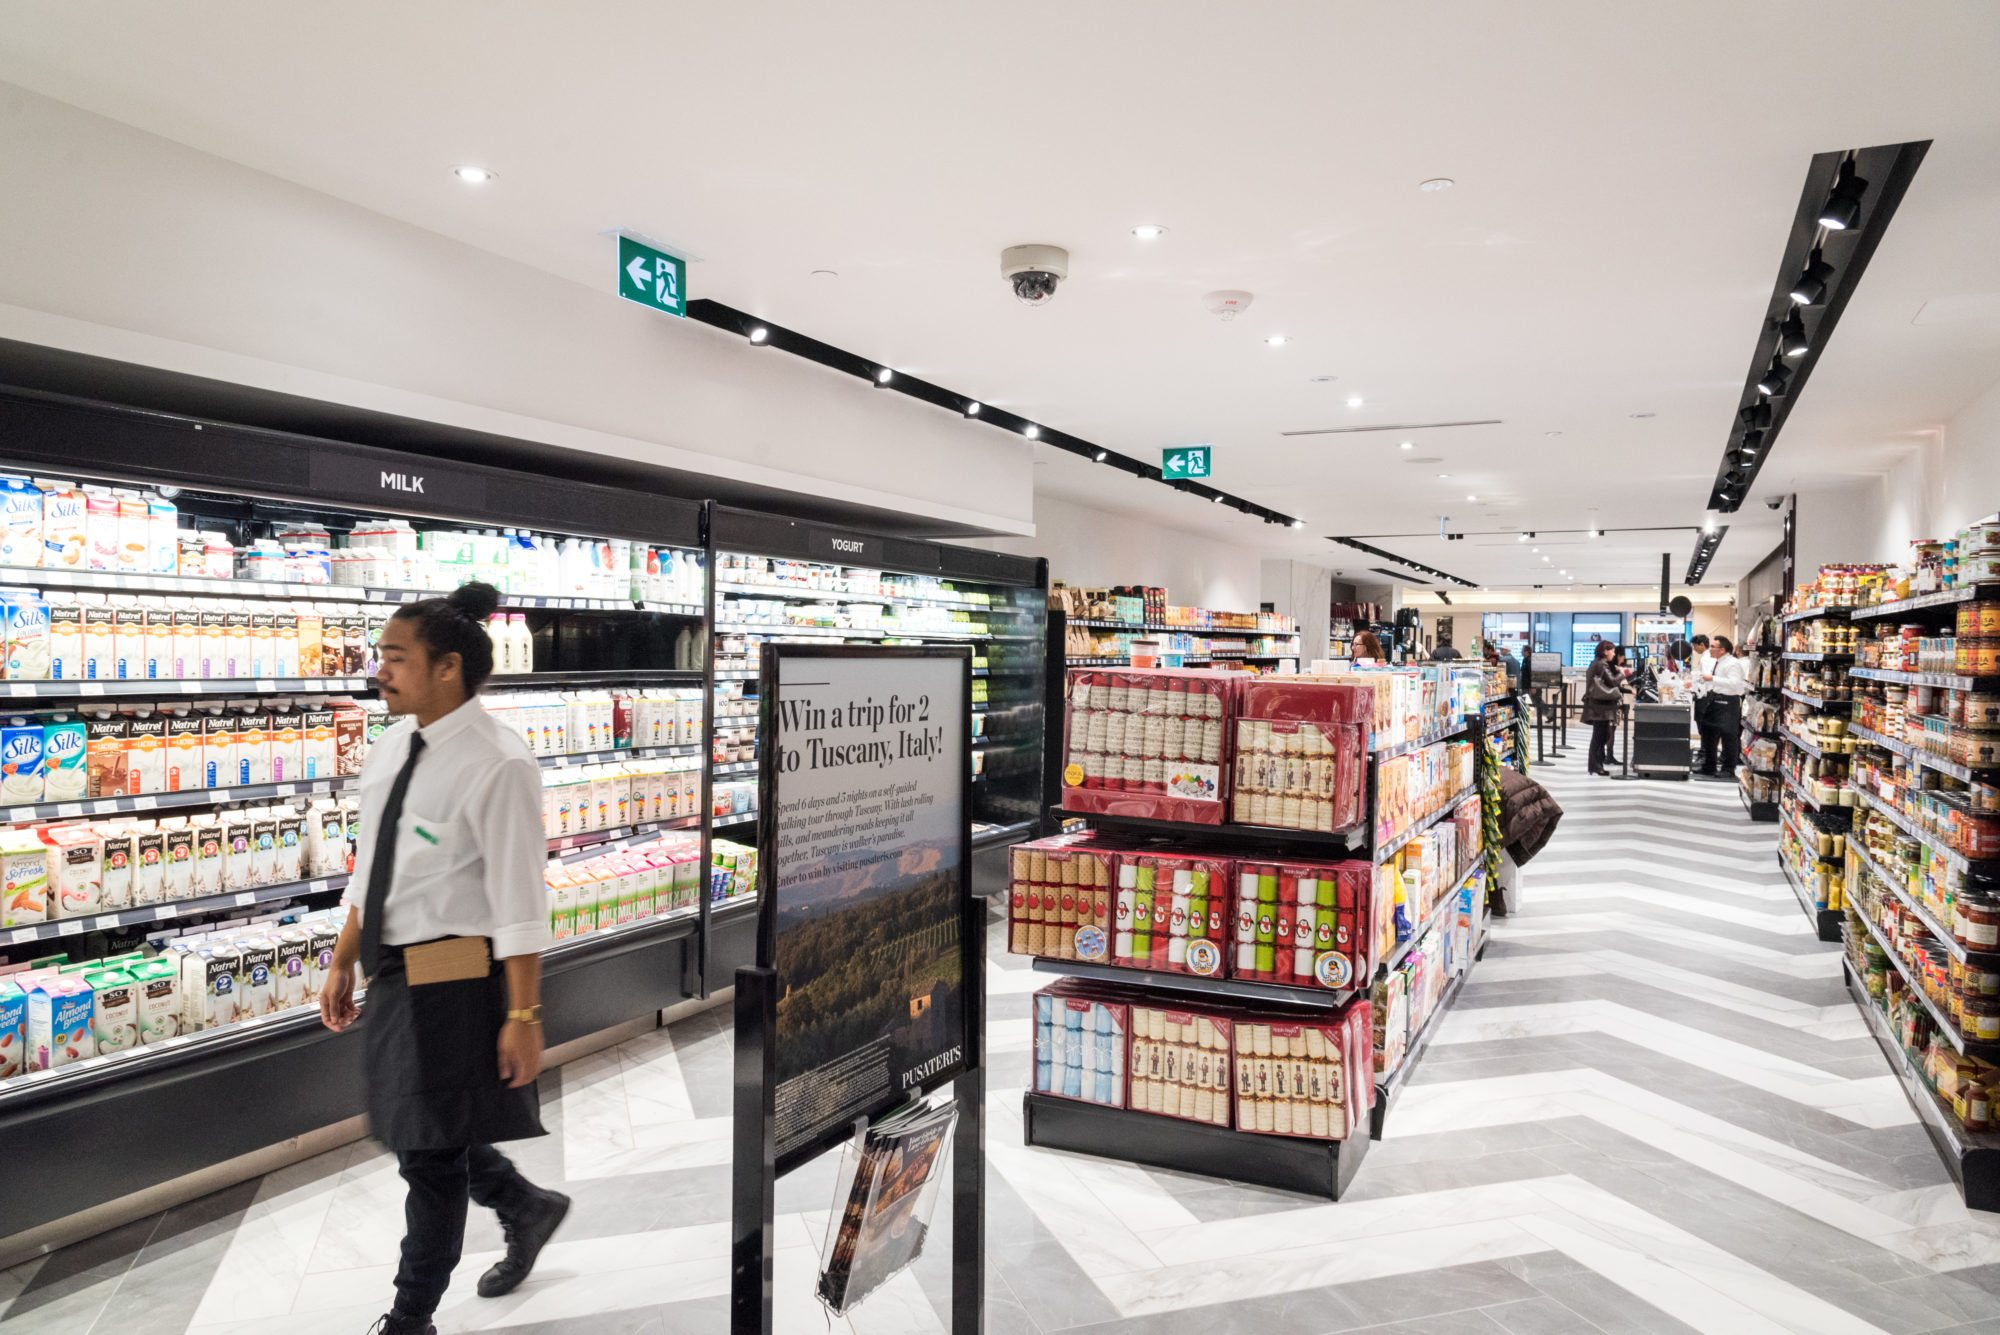 toronto-food-shops-pusateris-food-hall-saks-fifth-avenue-eaton-centre-dairy-grocery-section